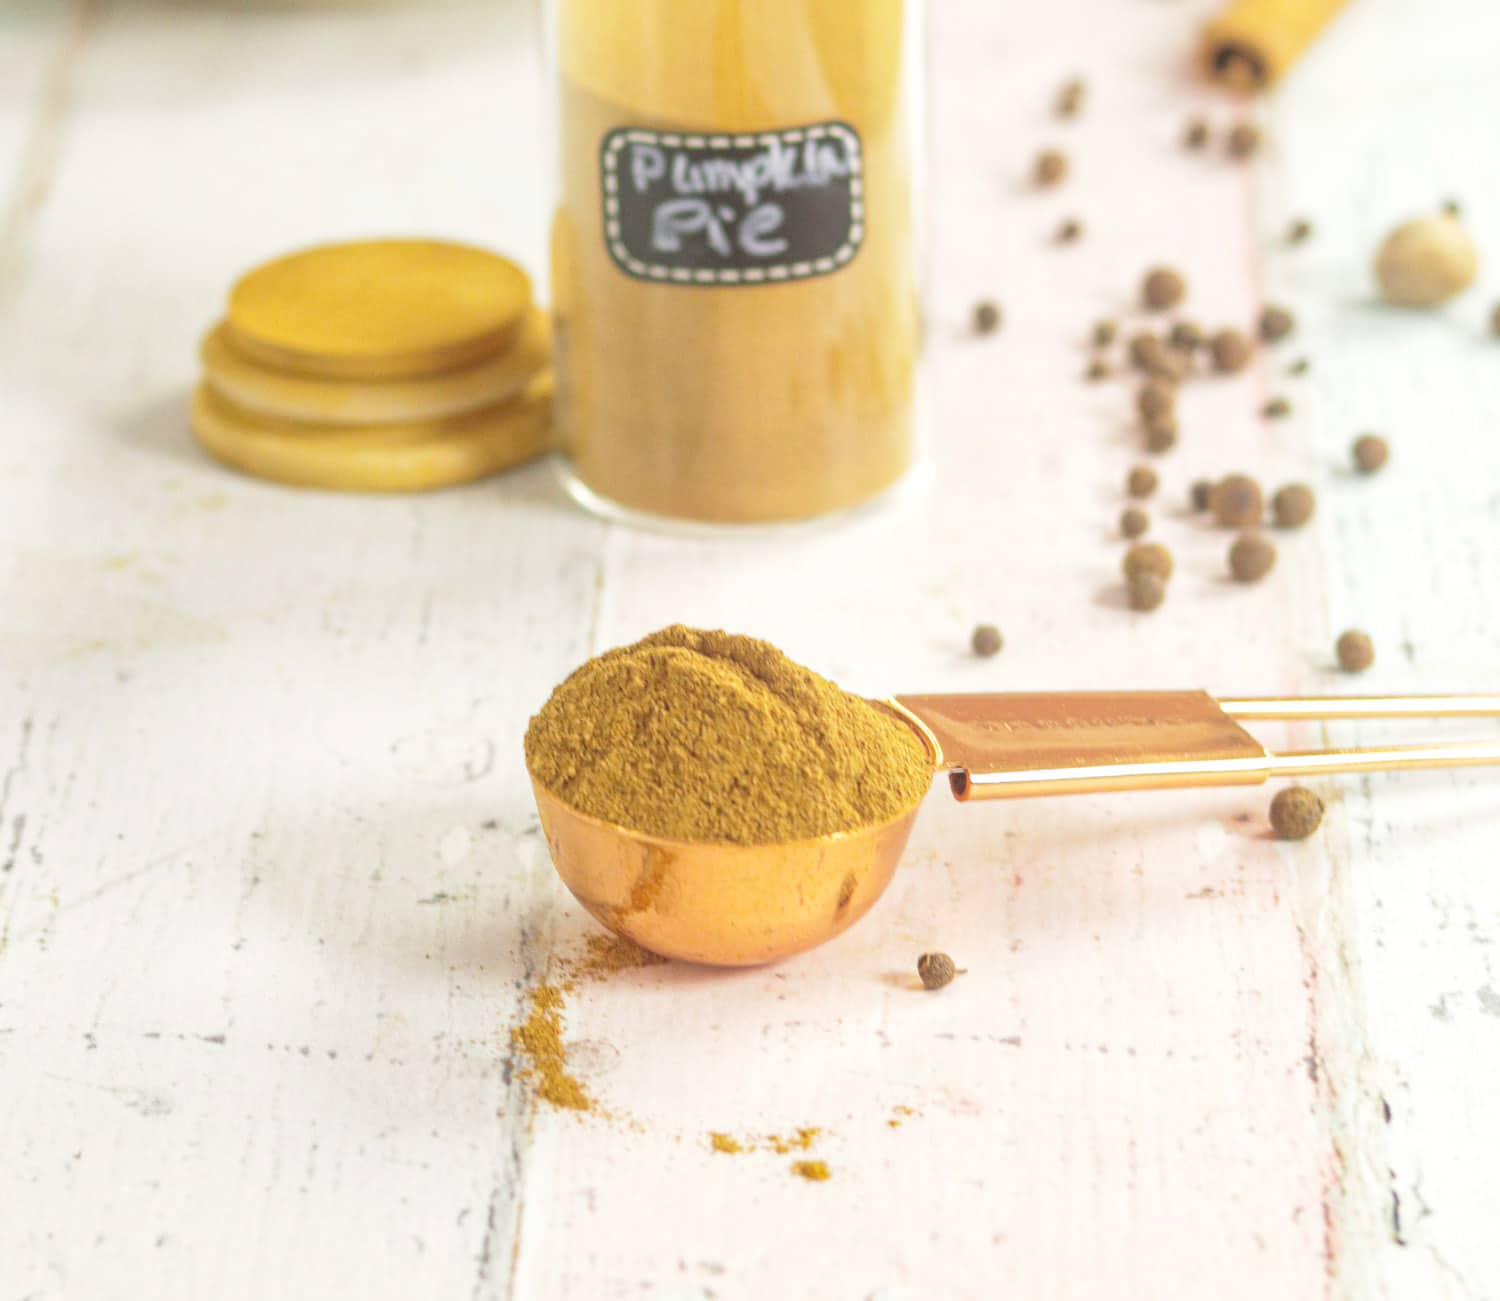 Pumpkin Pie Spice Mix on a spoon with whole spices in the background